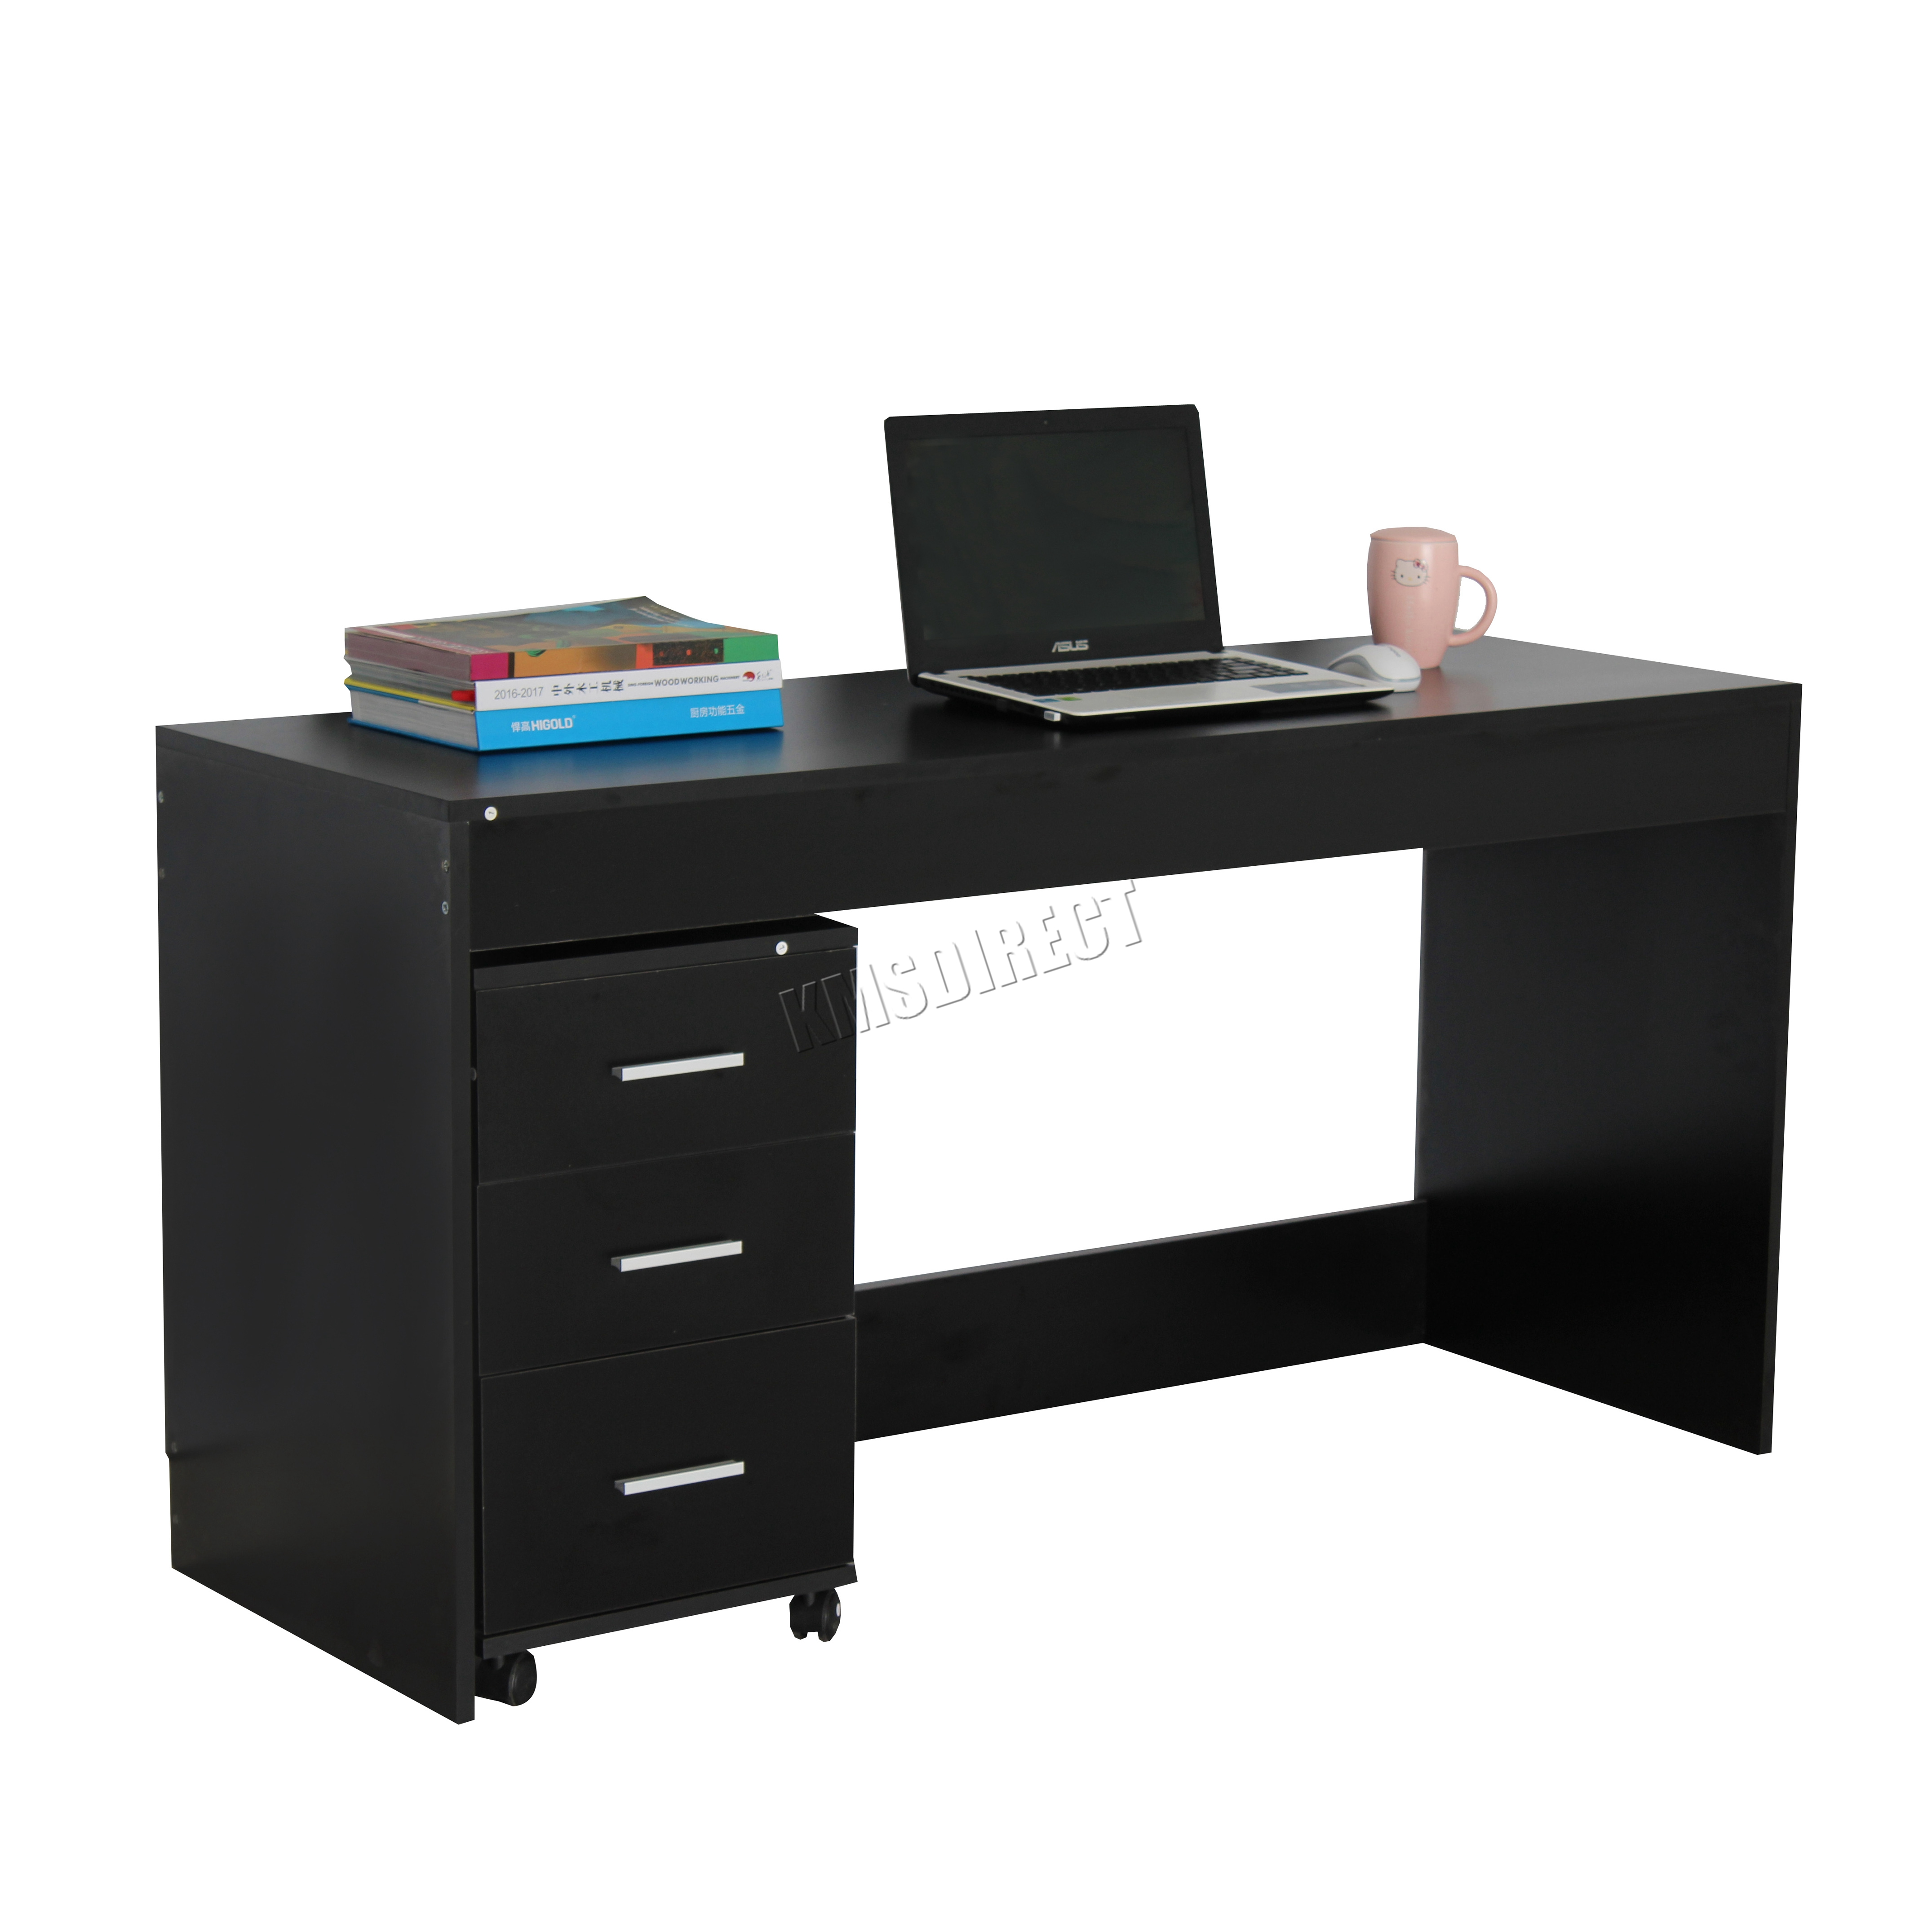 westwood computer desk pc table with 3 drawers home office. Black Bedroom Furniture Sets. Home Design Ideas